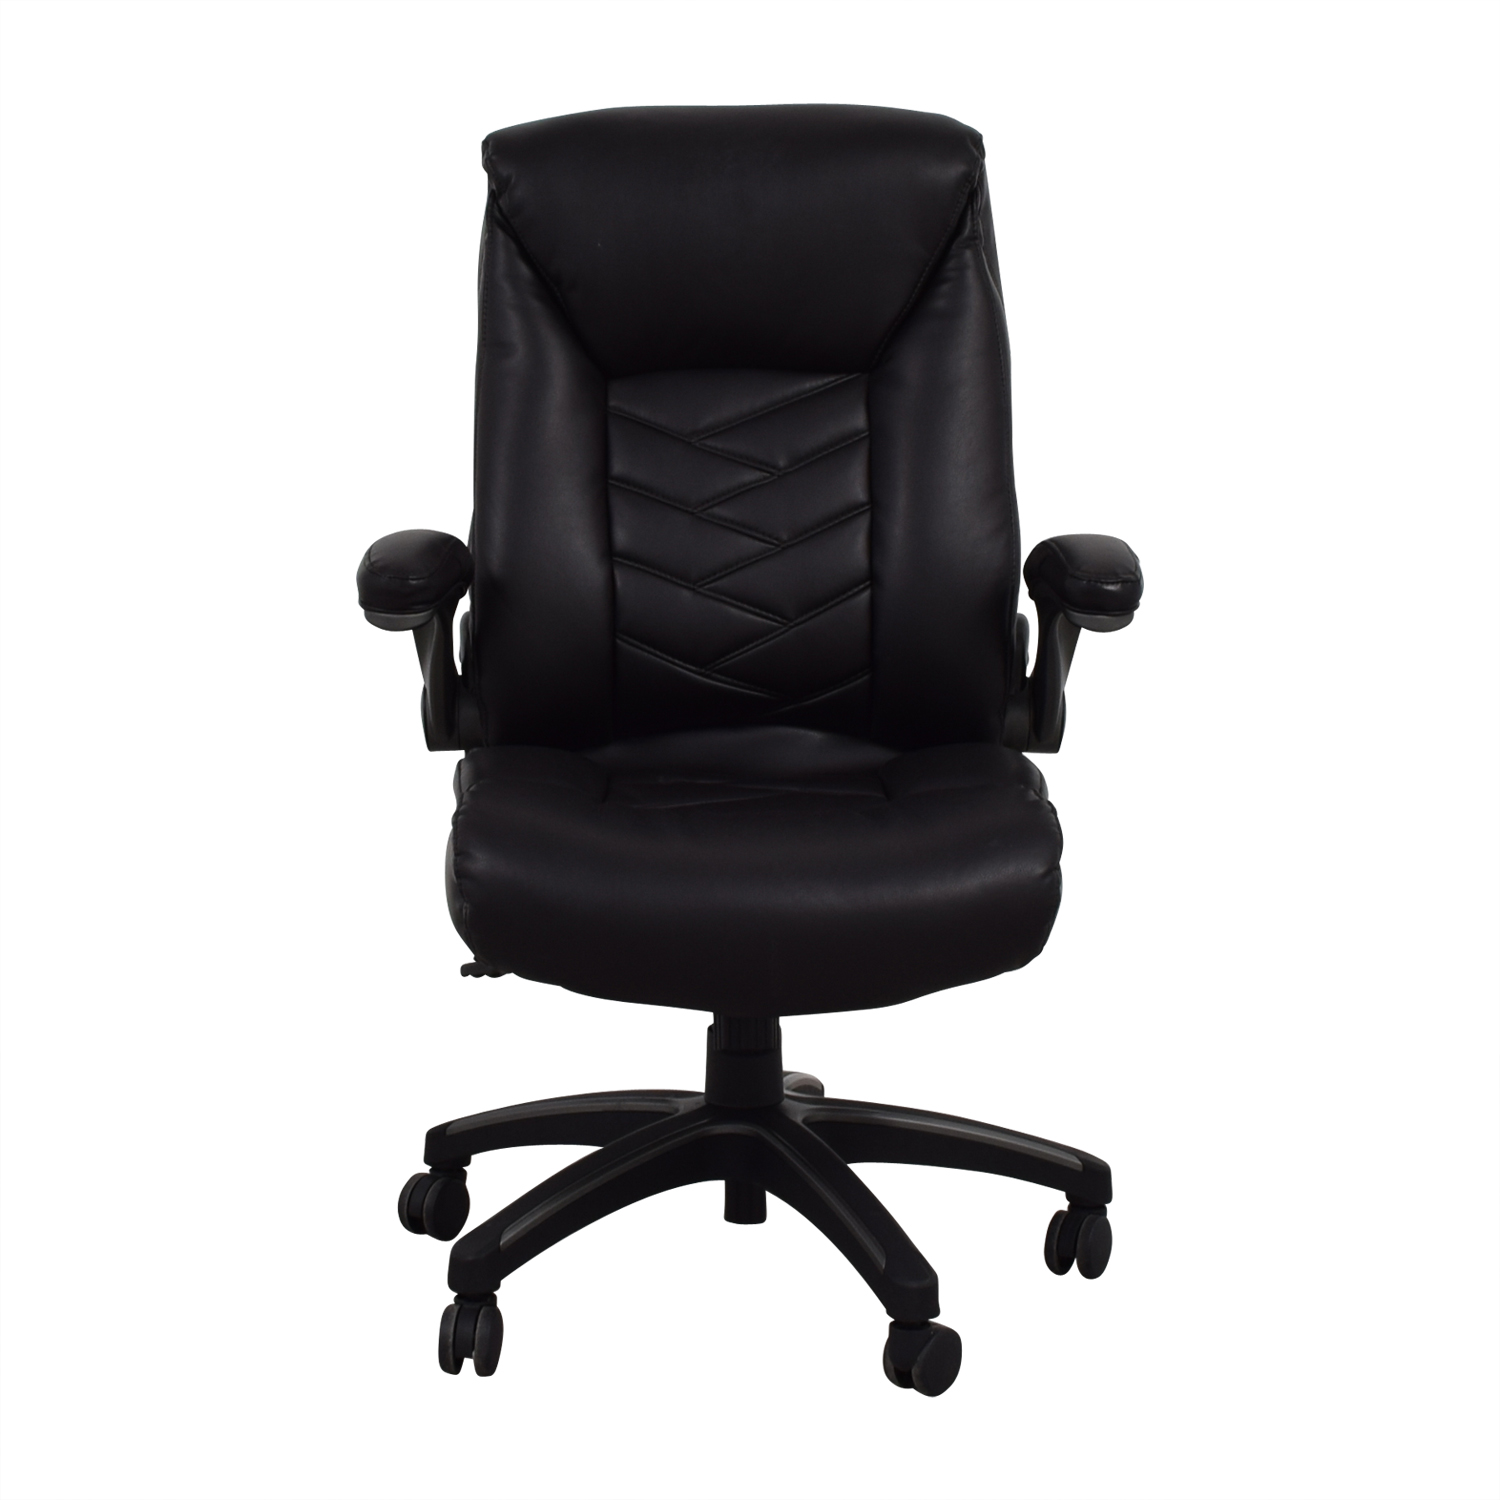 Black Leather Office Chair nj